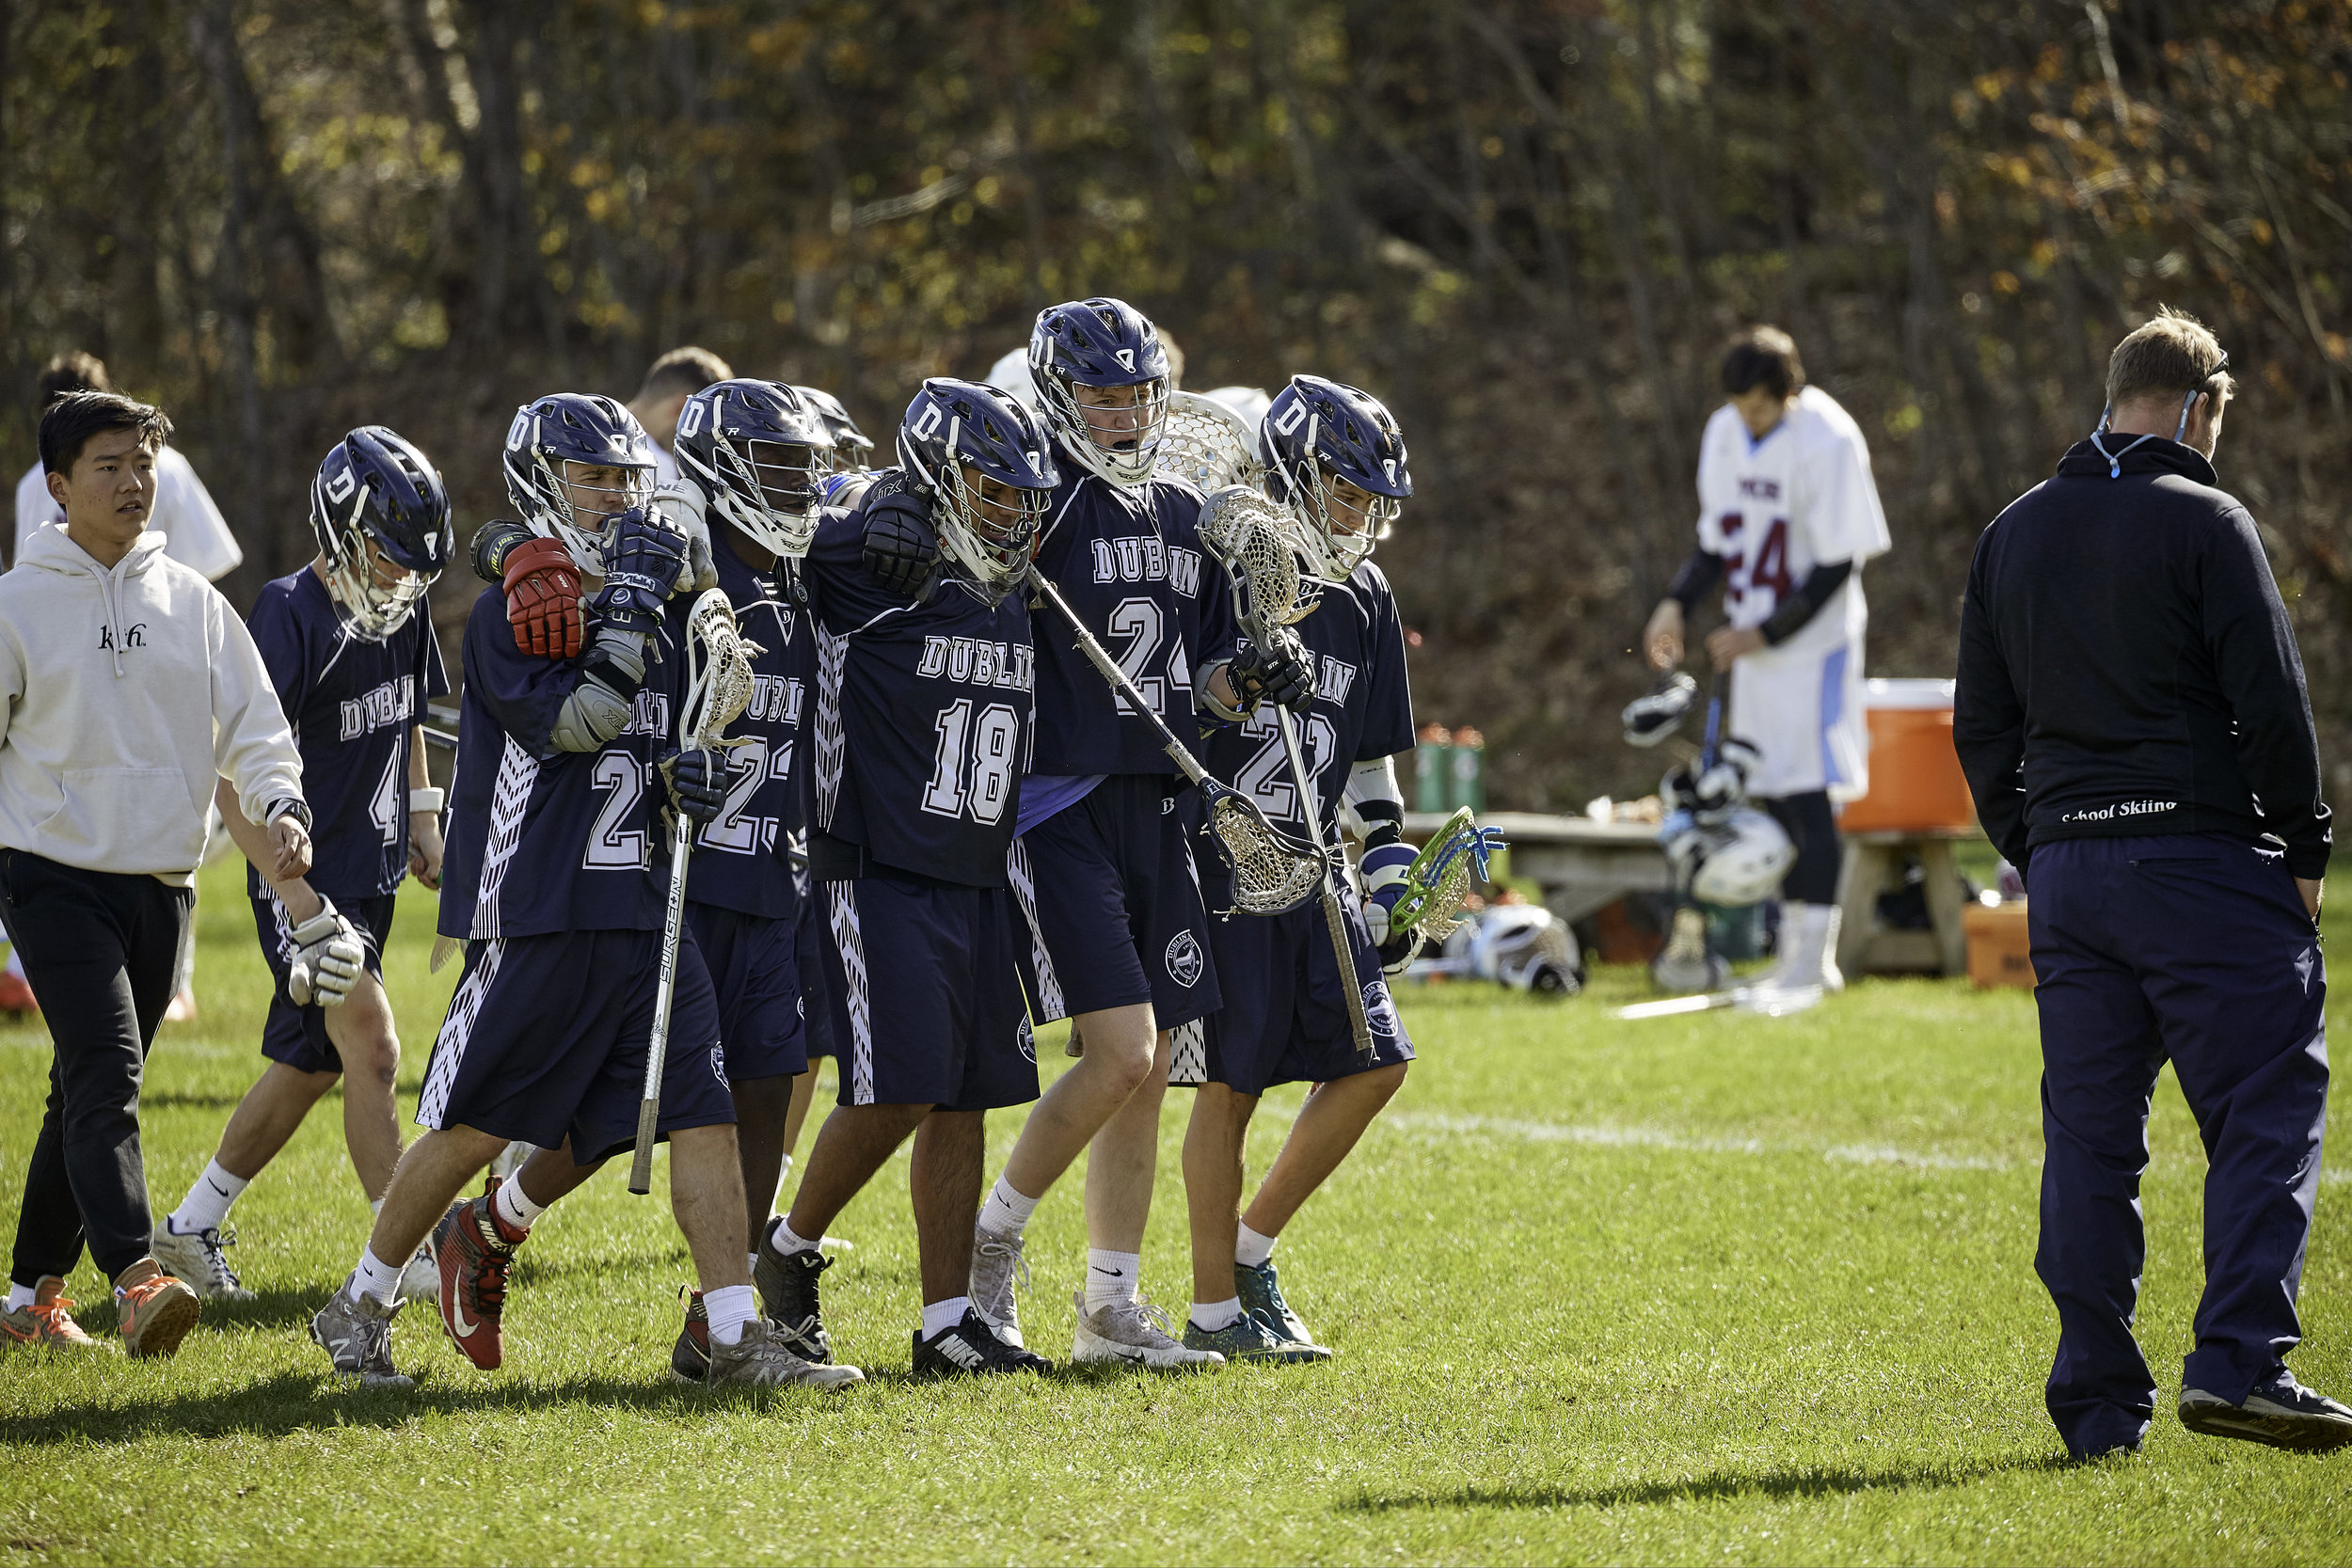 Boys Lax vs Northfield Mount Hermon JV - May 15 2019 - 0074.jpg